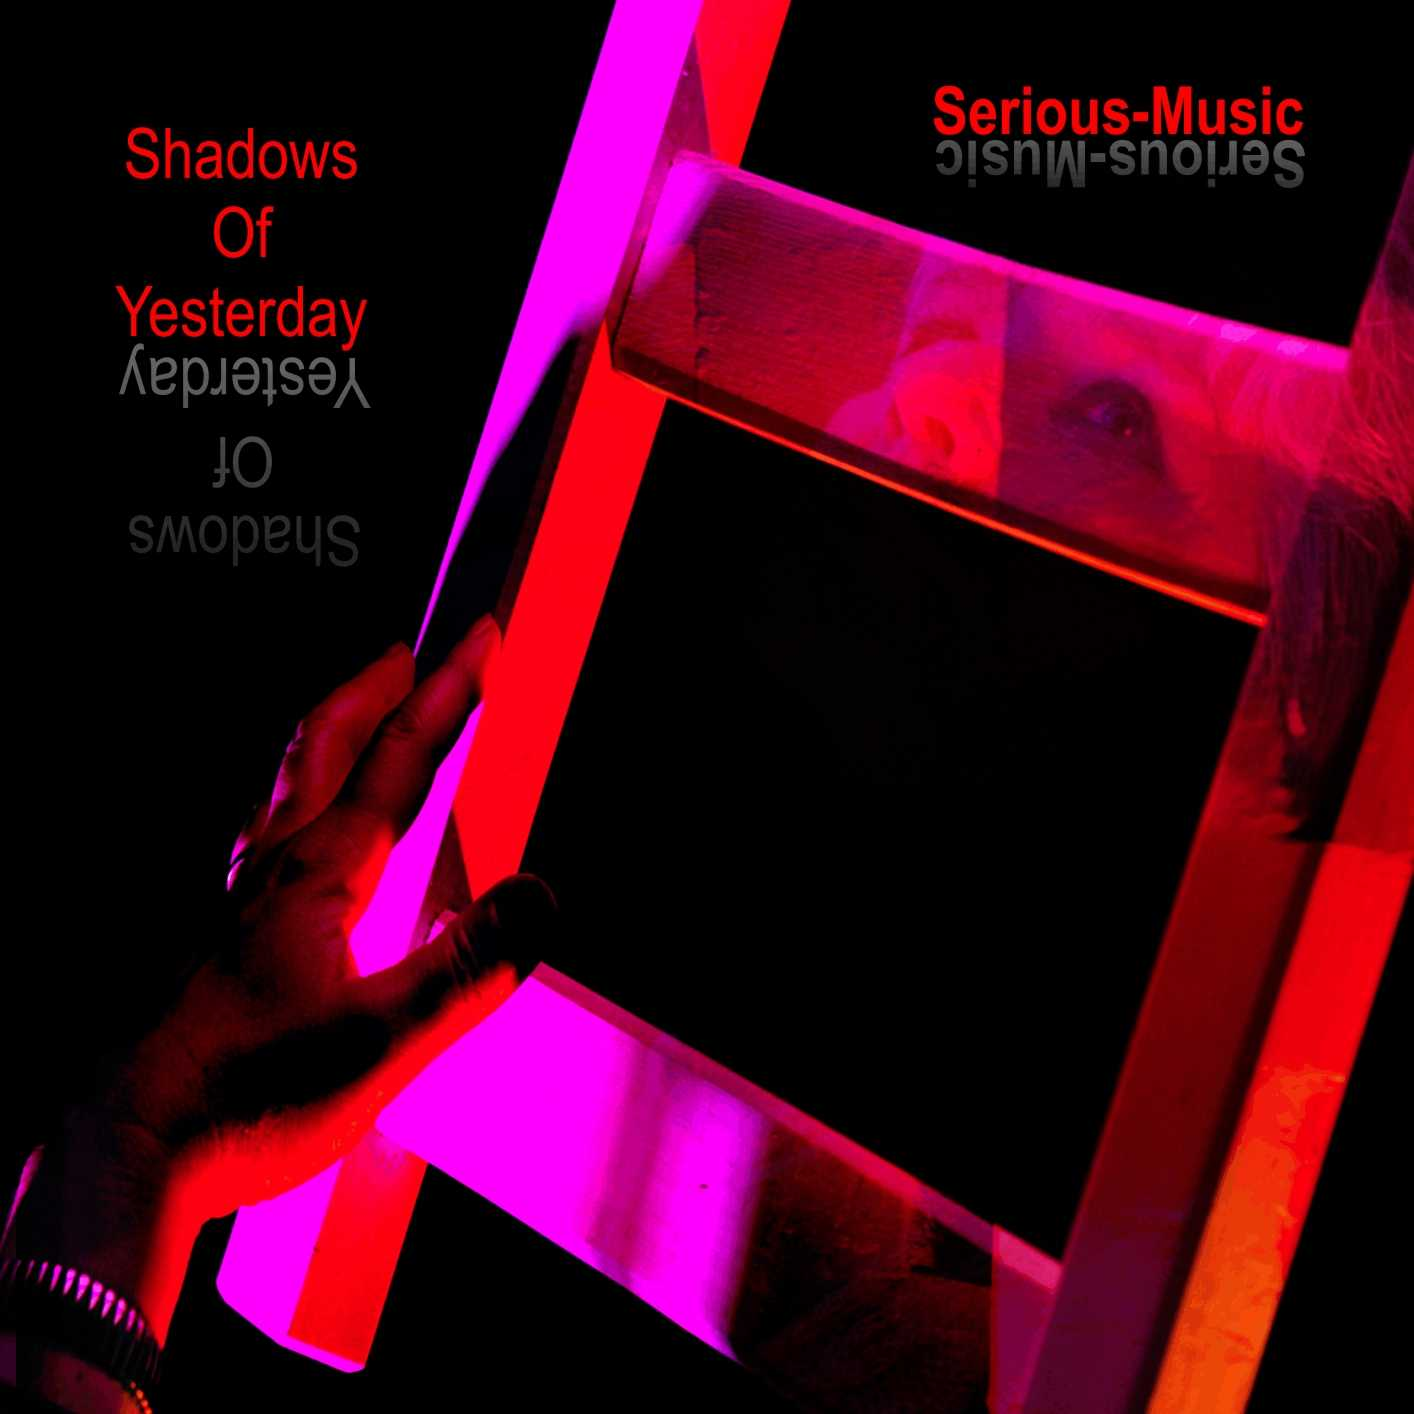 Shadows Of Yesterday feat. Paul Dempsey, Luigi Sensi - Album SHADOWS OF YESTERDAY